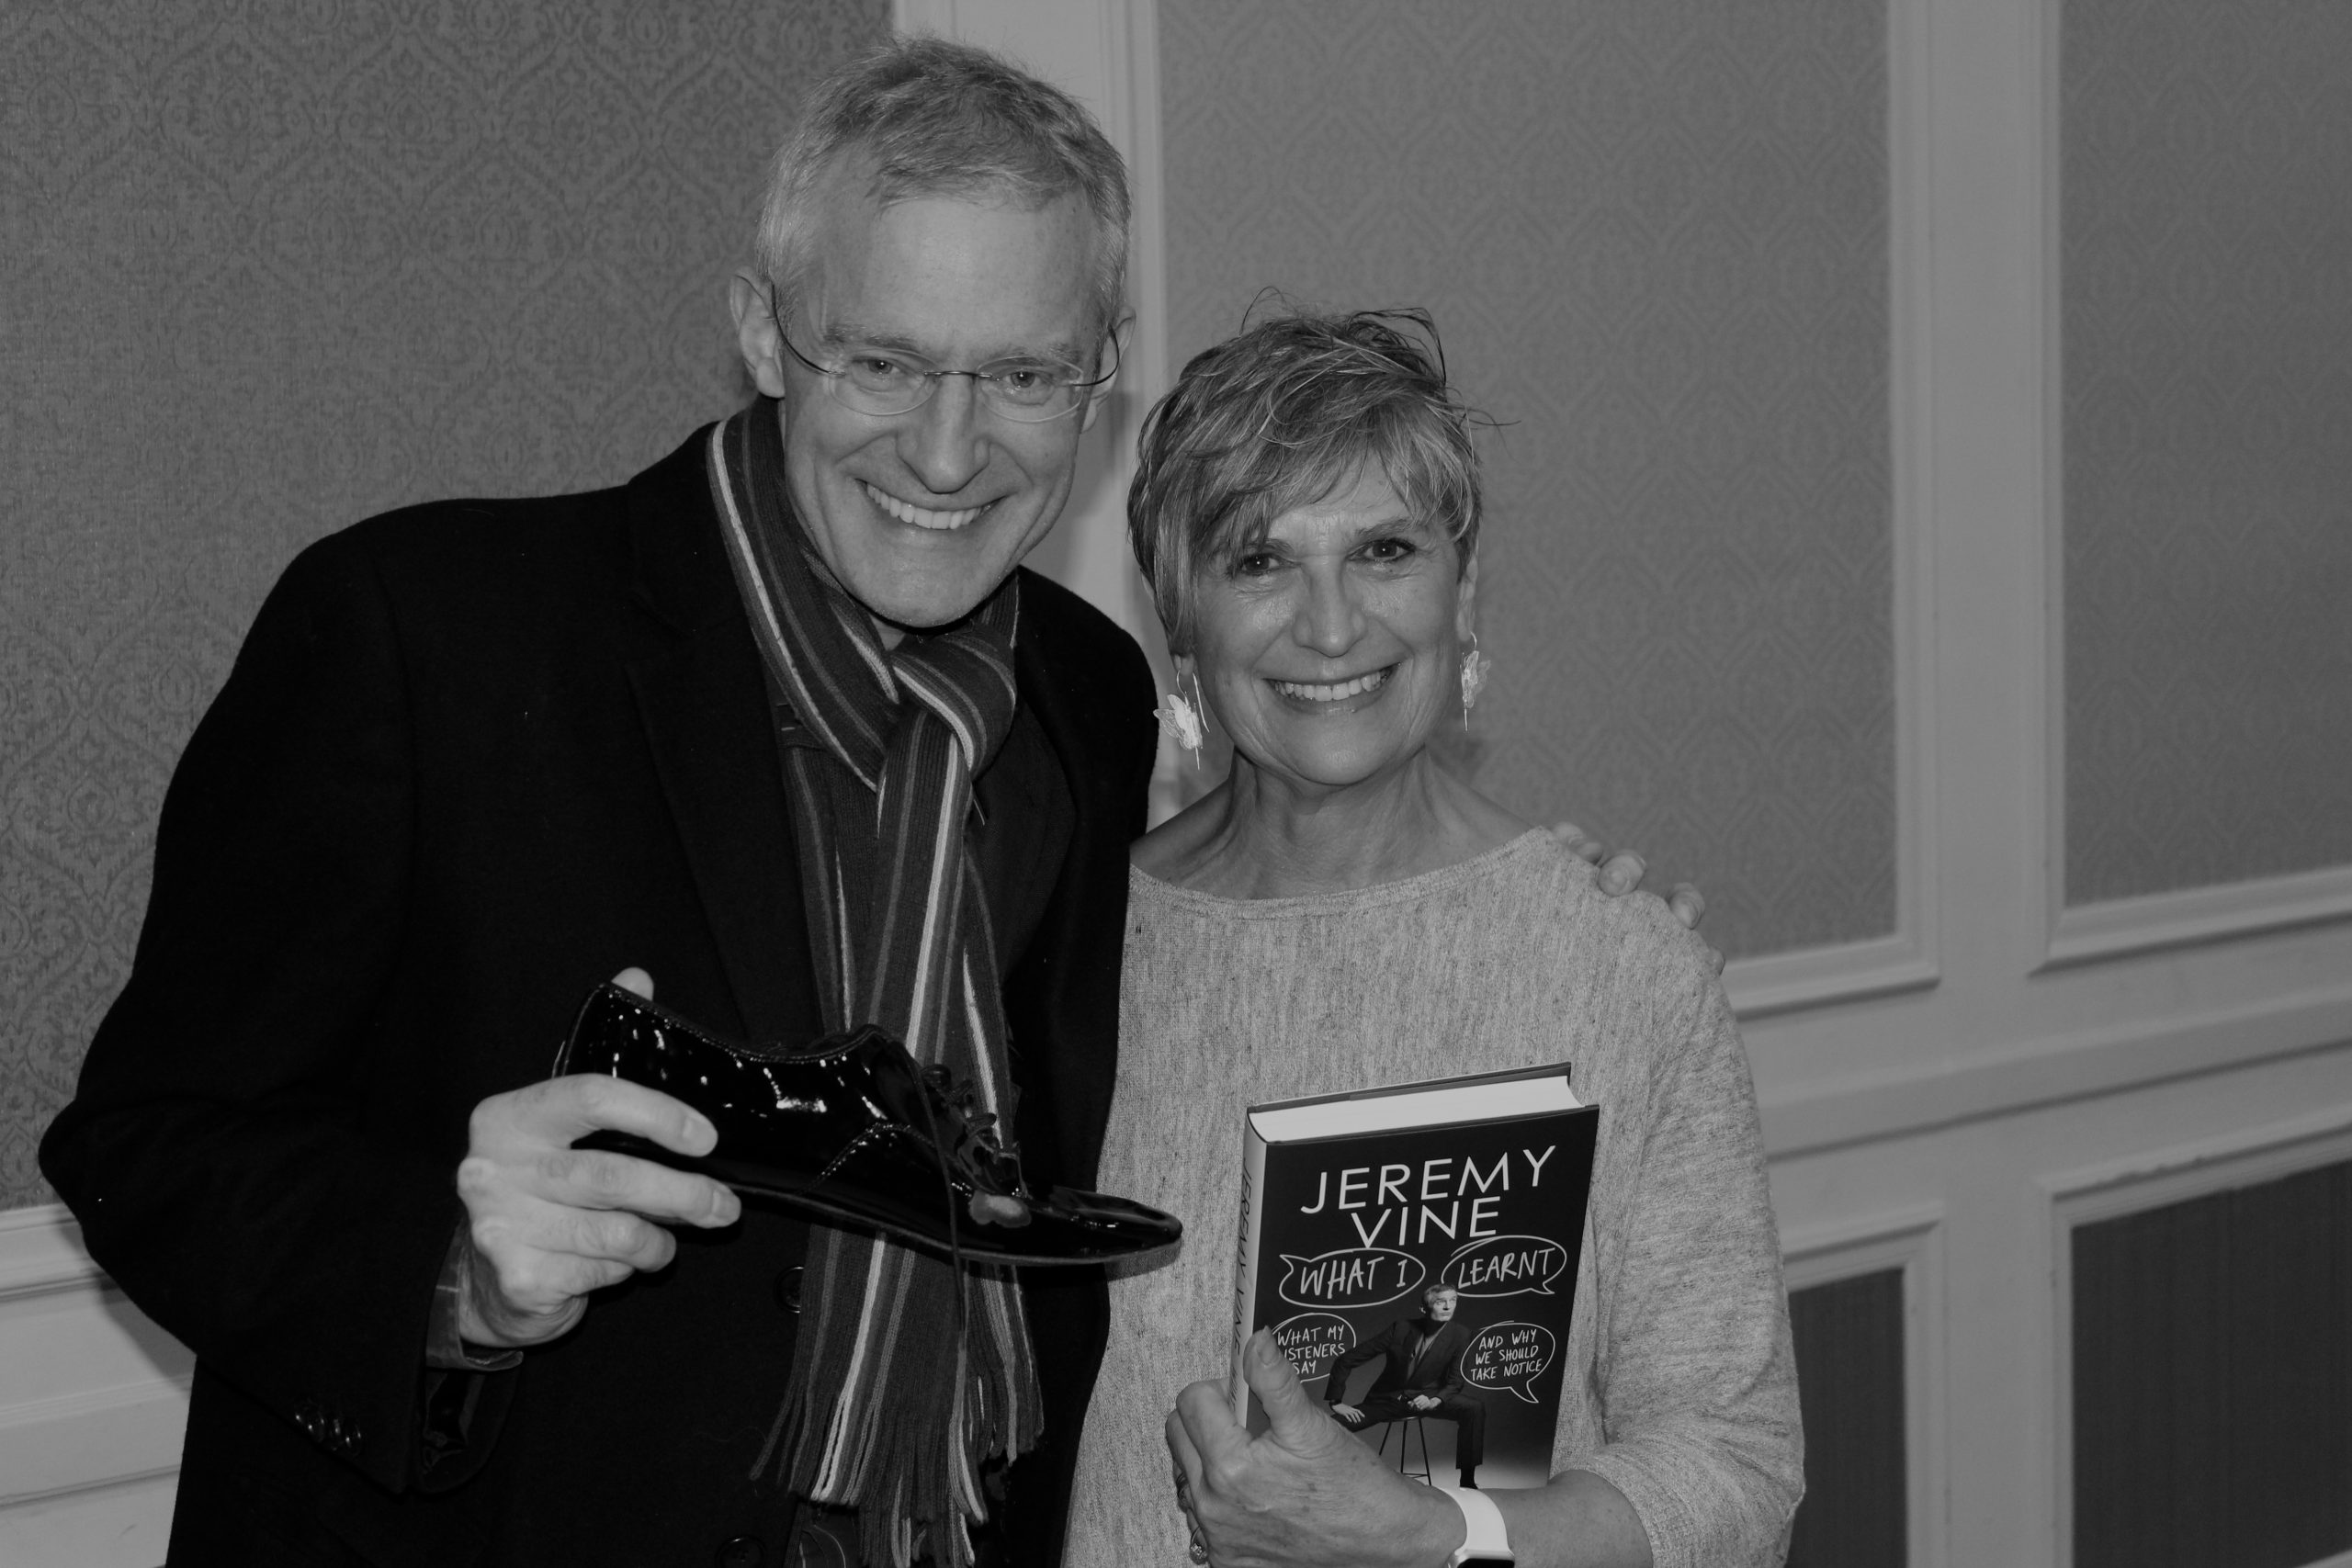 Jeremy Vine at Thame arts and literature festival